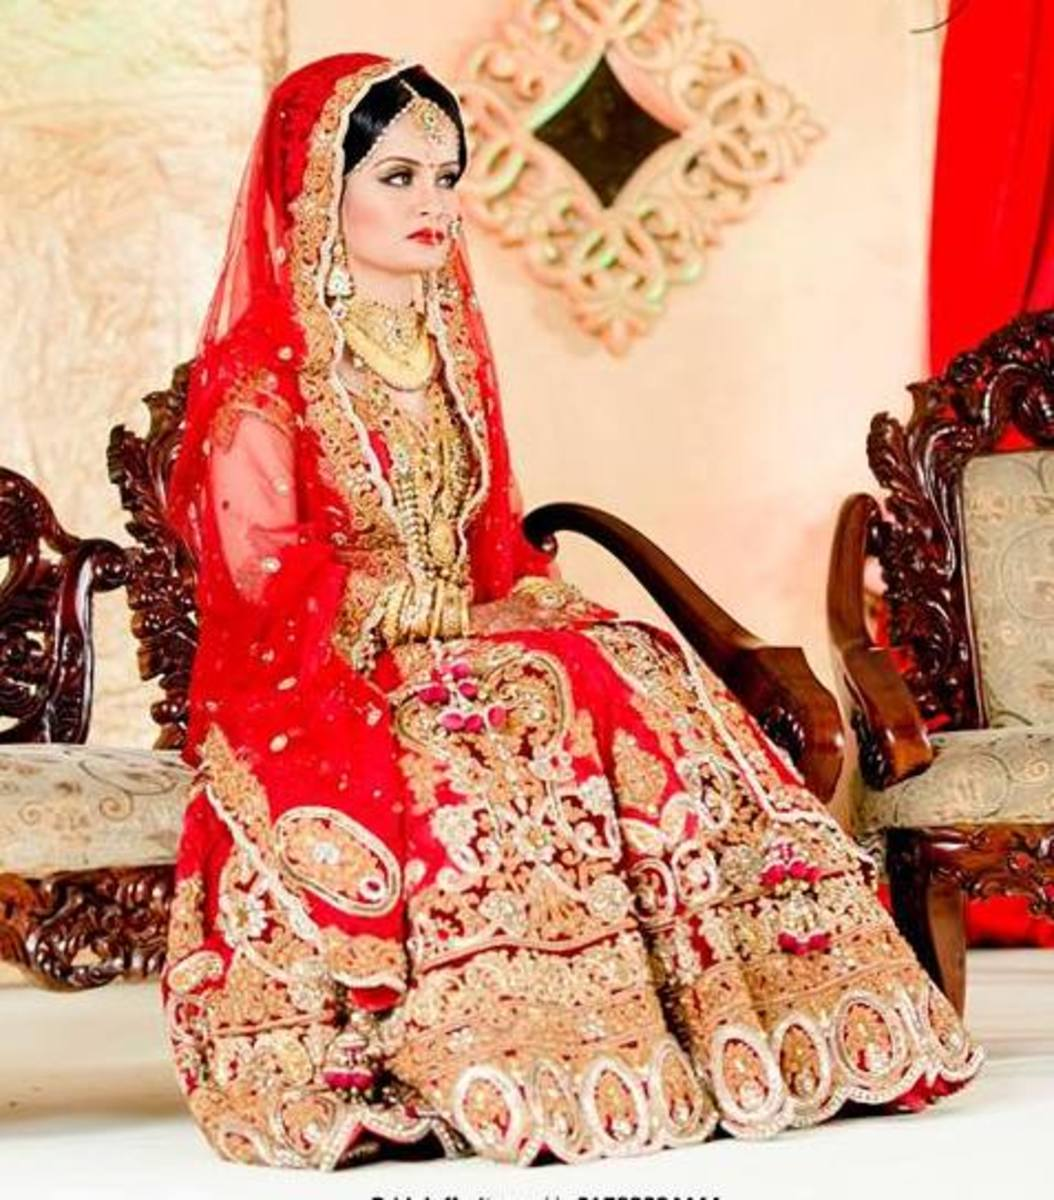 A bride sitting on stage in a red bridal lehenga.